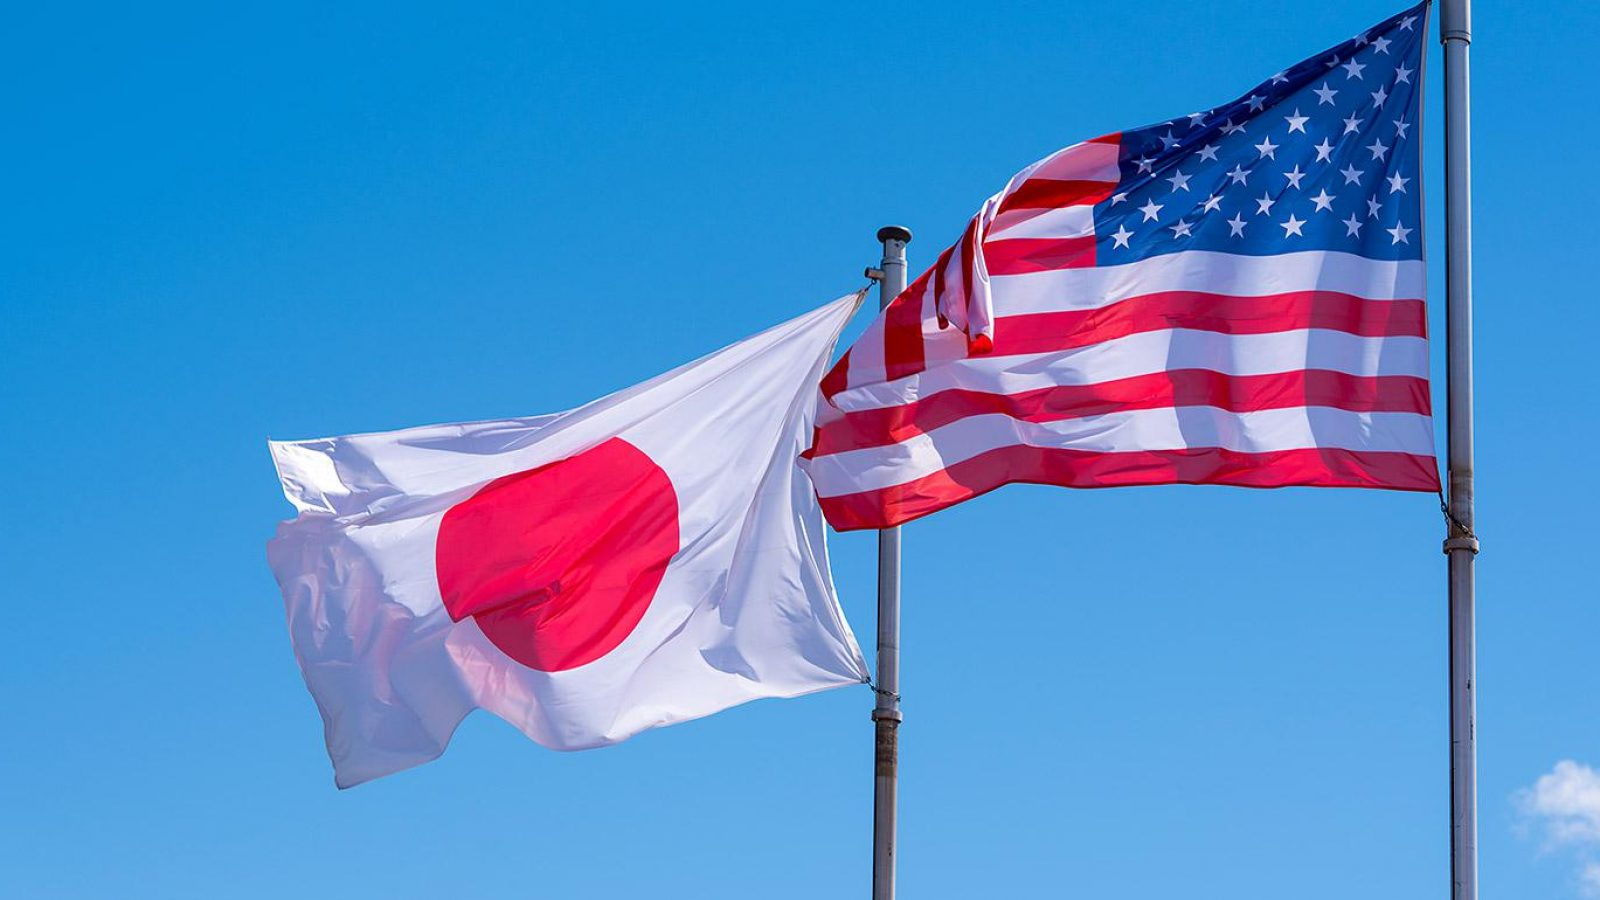 The U.S. and Japanese flags fly side by side.